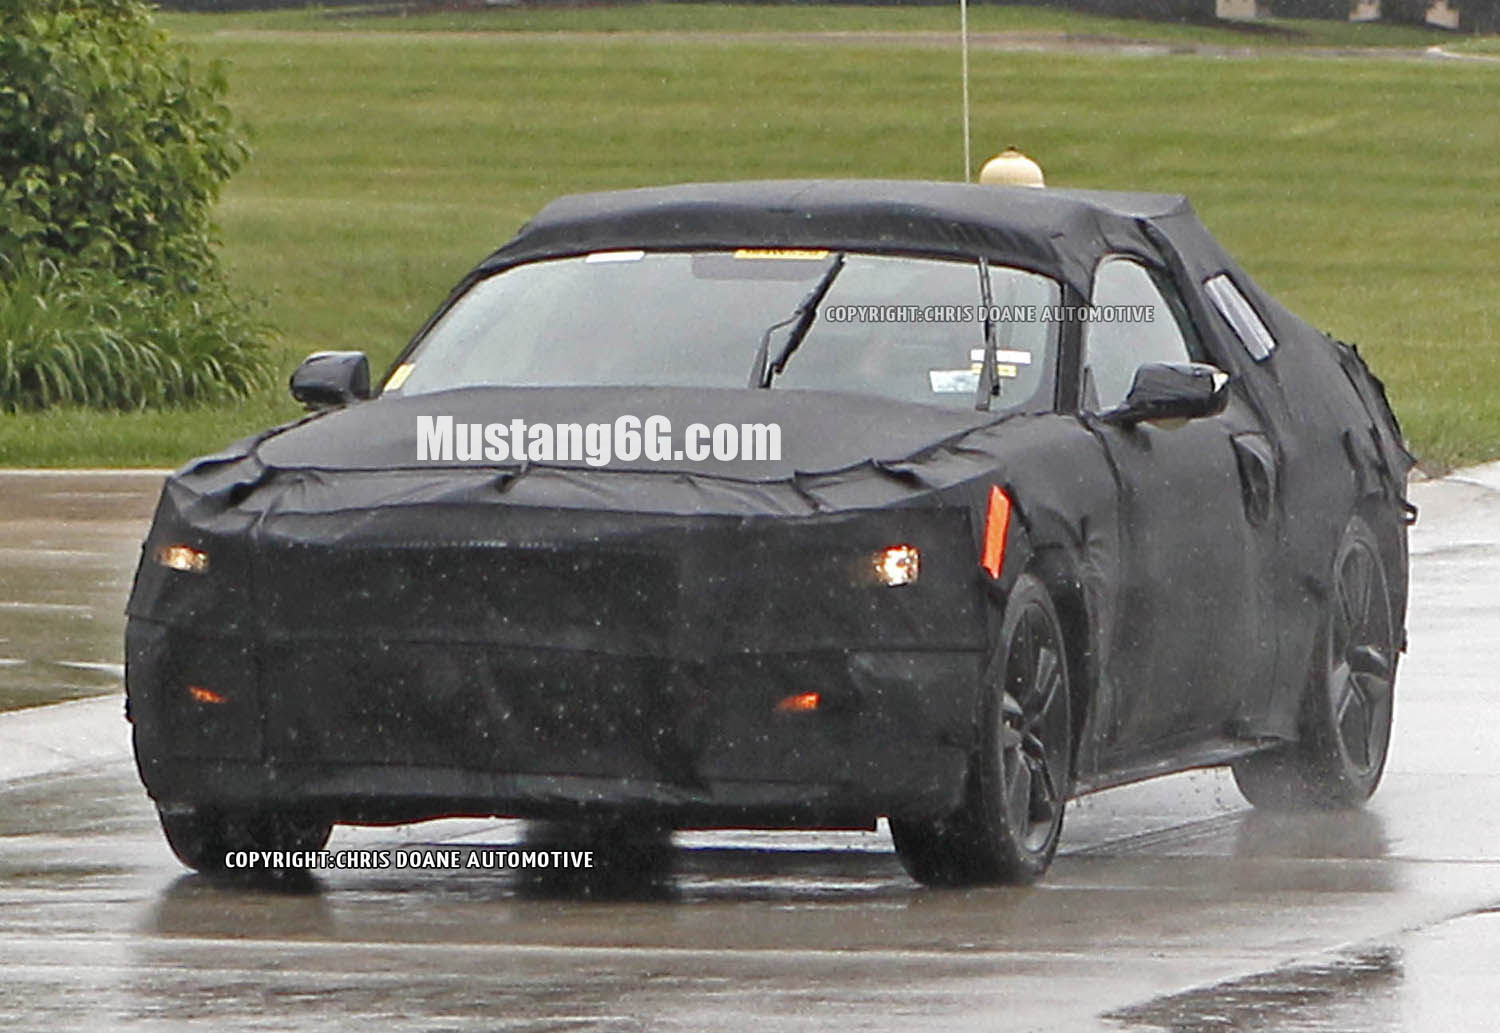 2015 Mustang Test Mule & Spied: Hereu0027s the 2015 Ford Mustang Under Camouflage ... markmcfarlin.com